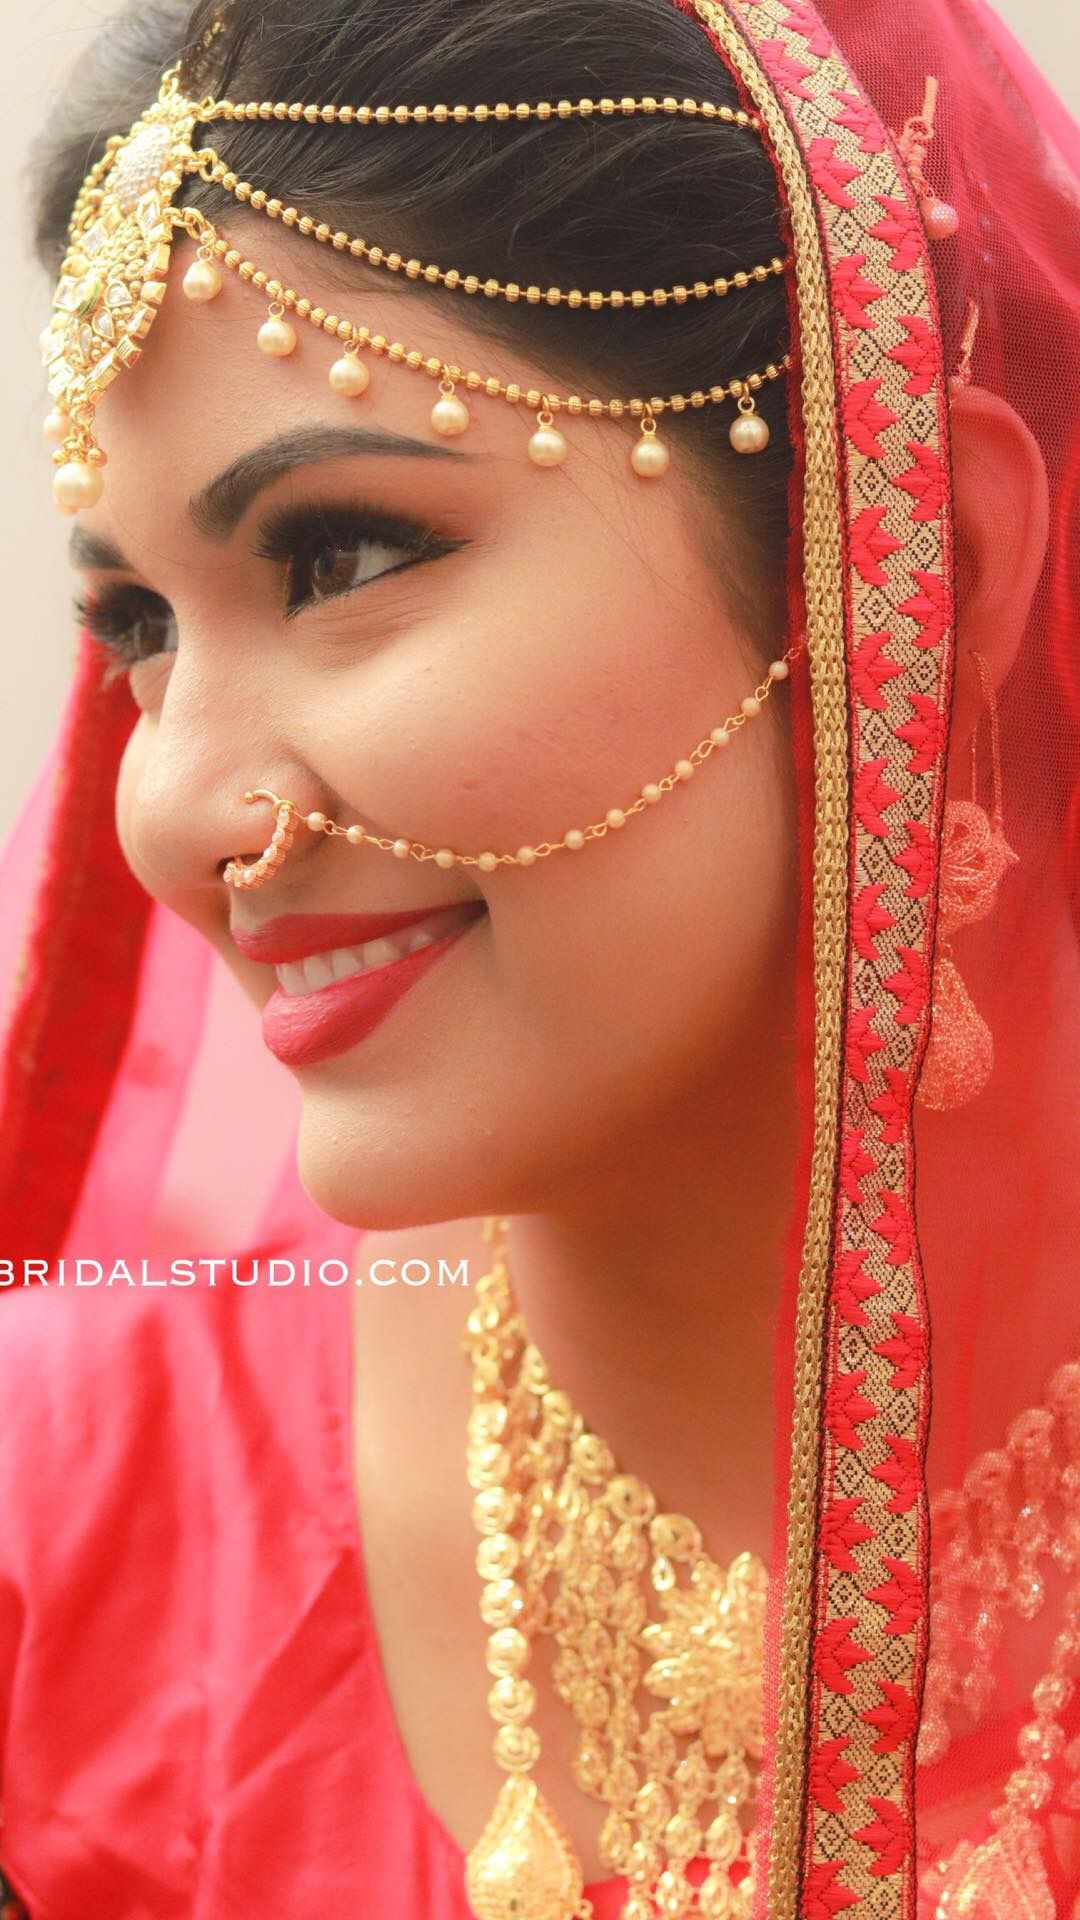 northindian bridal muslim makeup by karthika b3bridalstudio